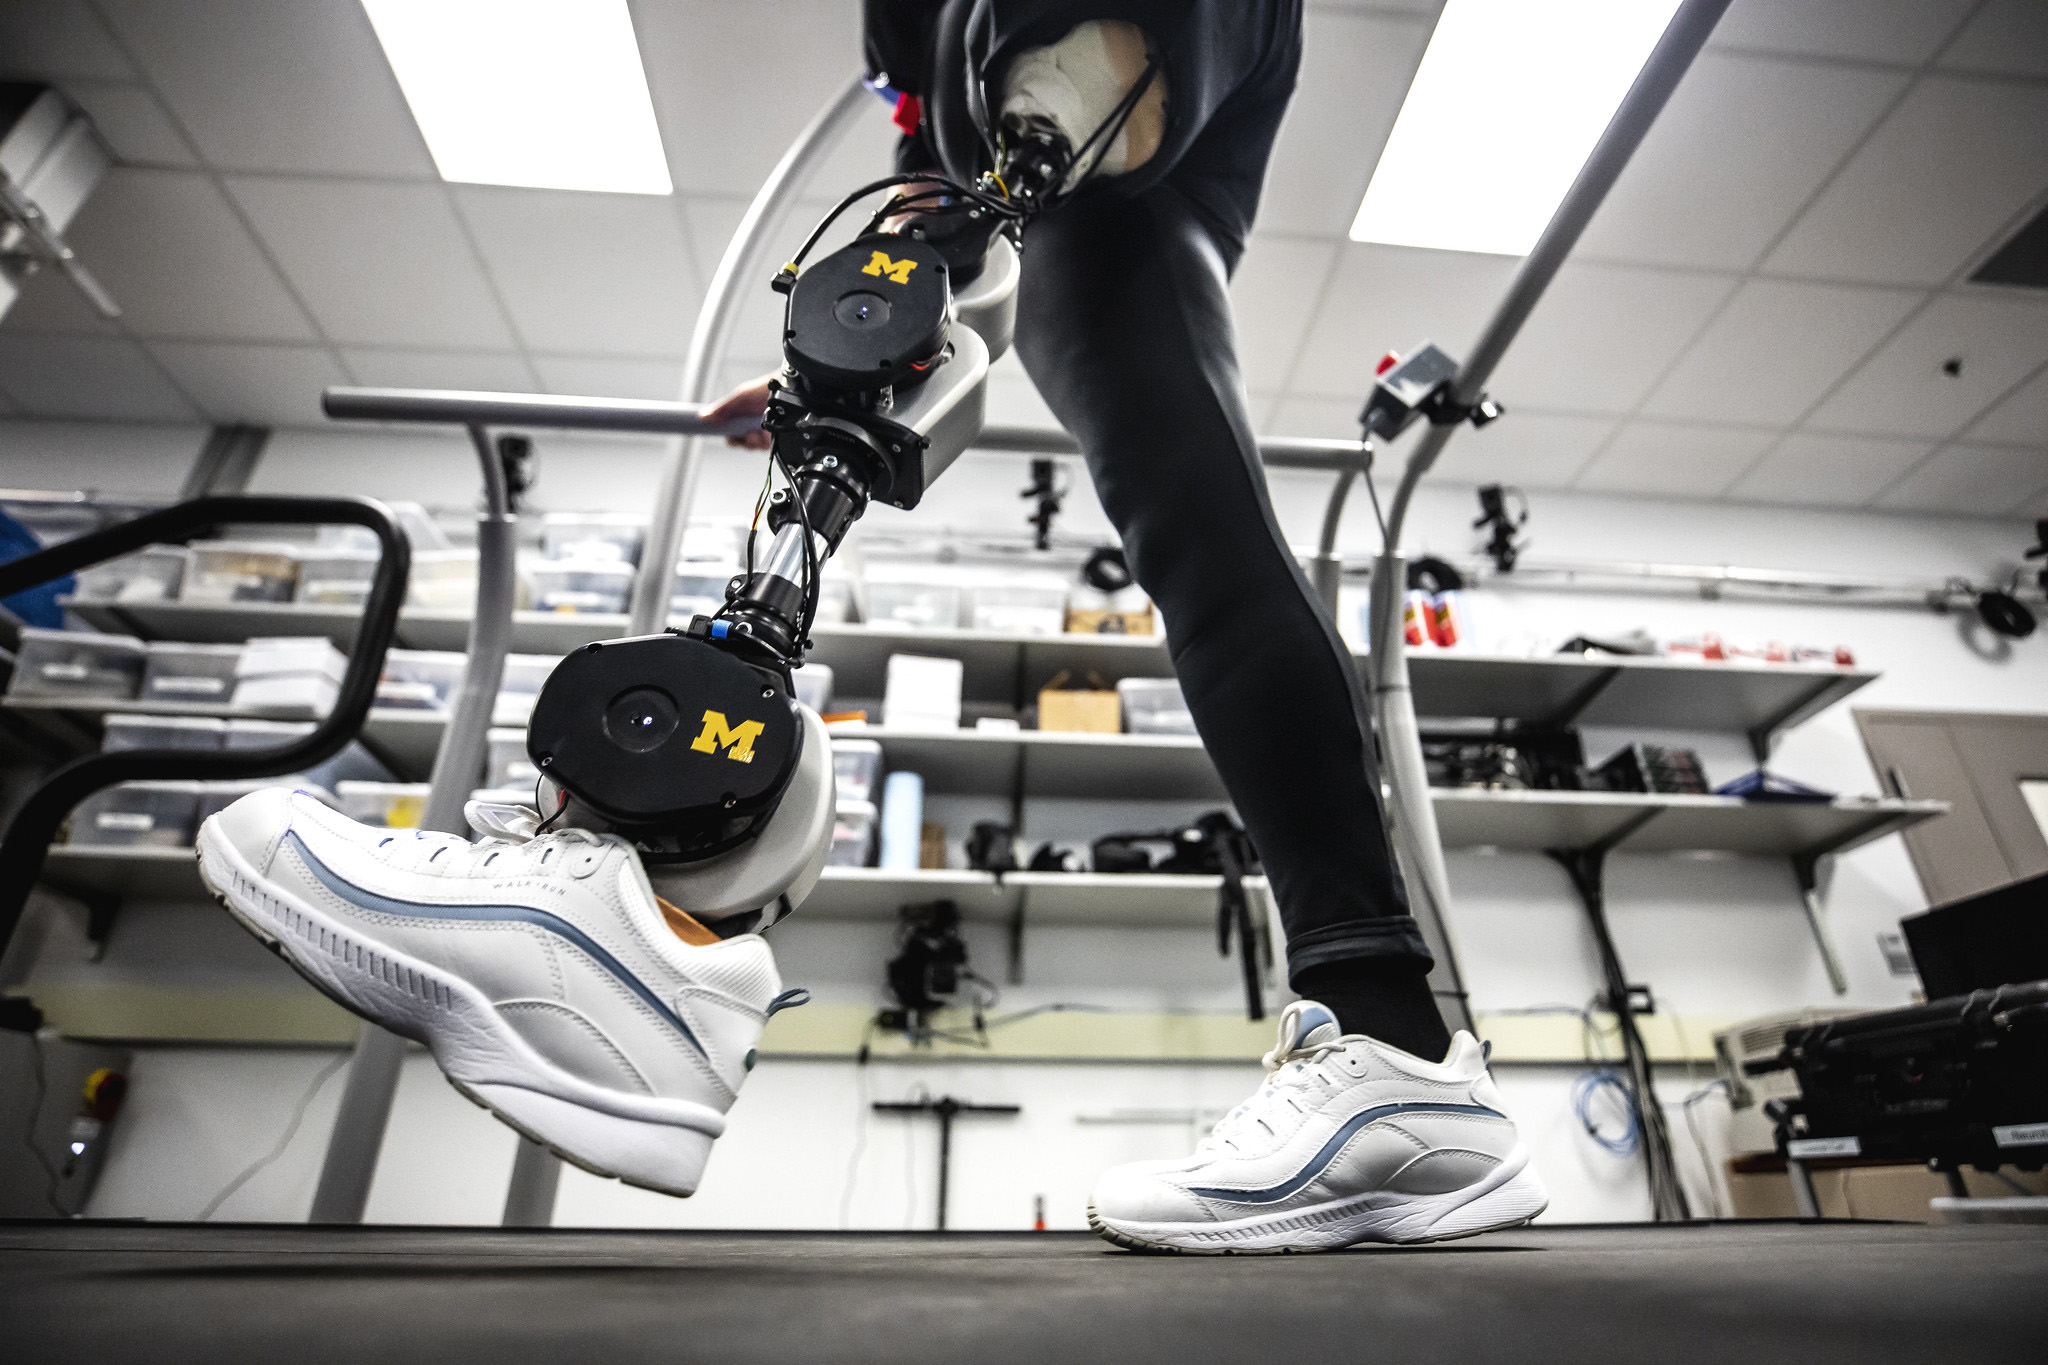 A photograph of a bionic leg being tested in lab.